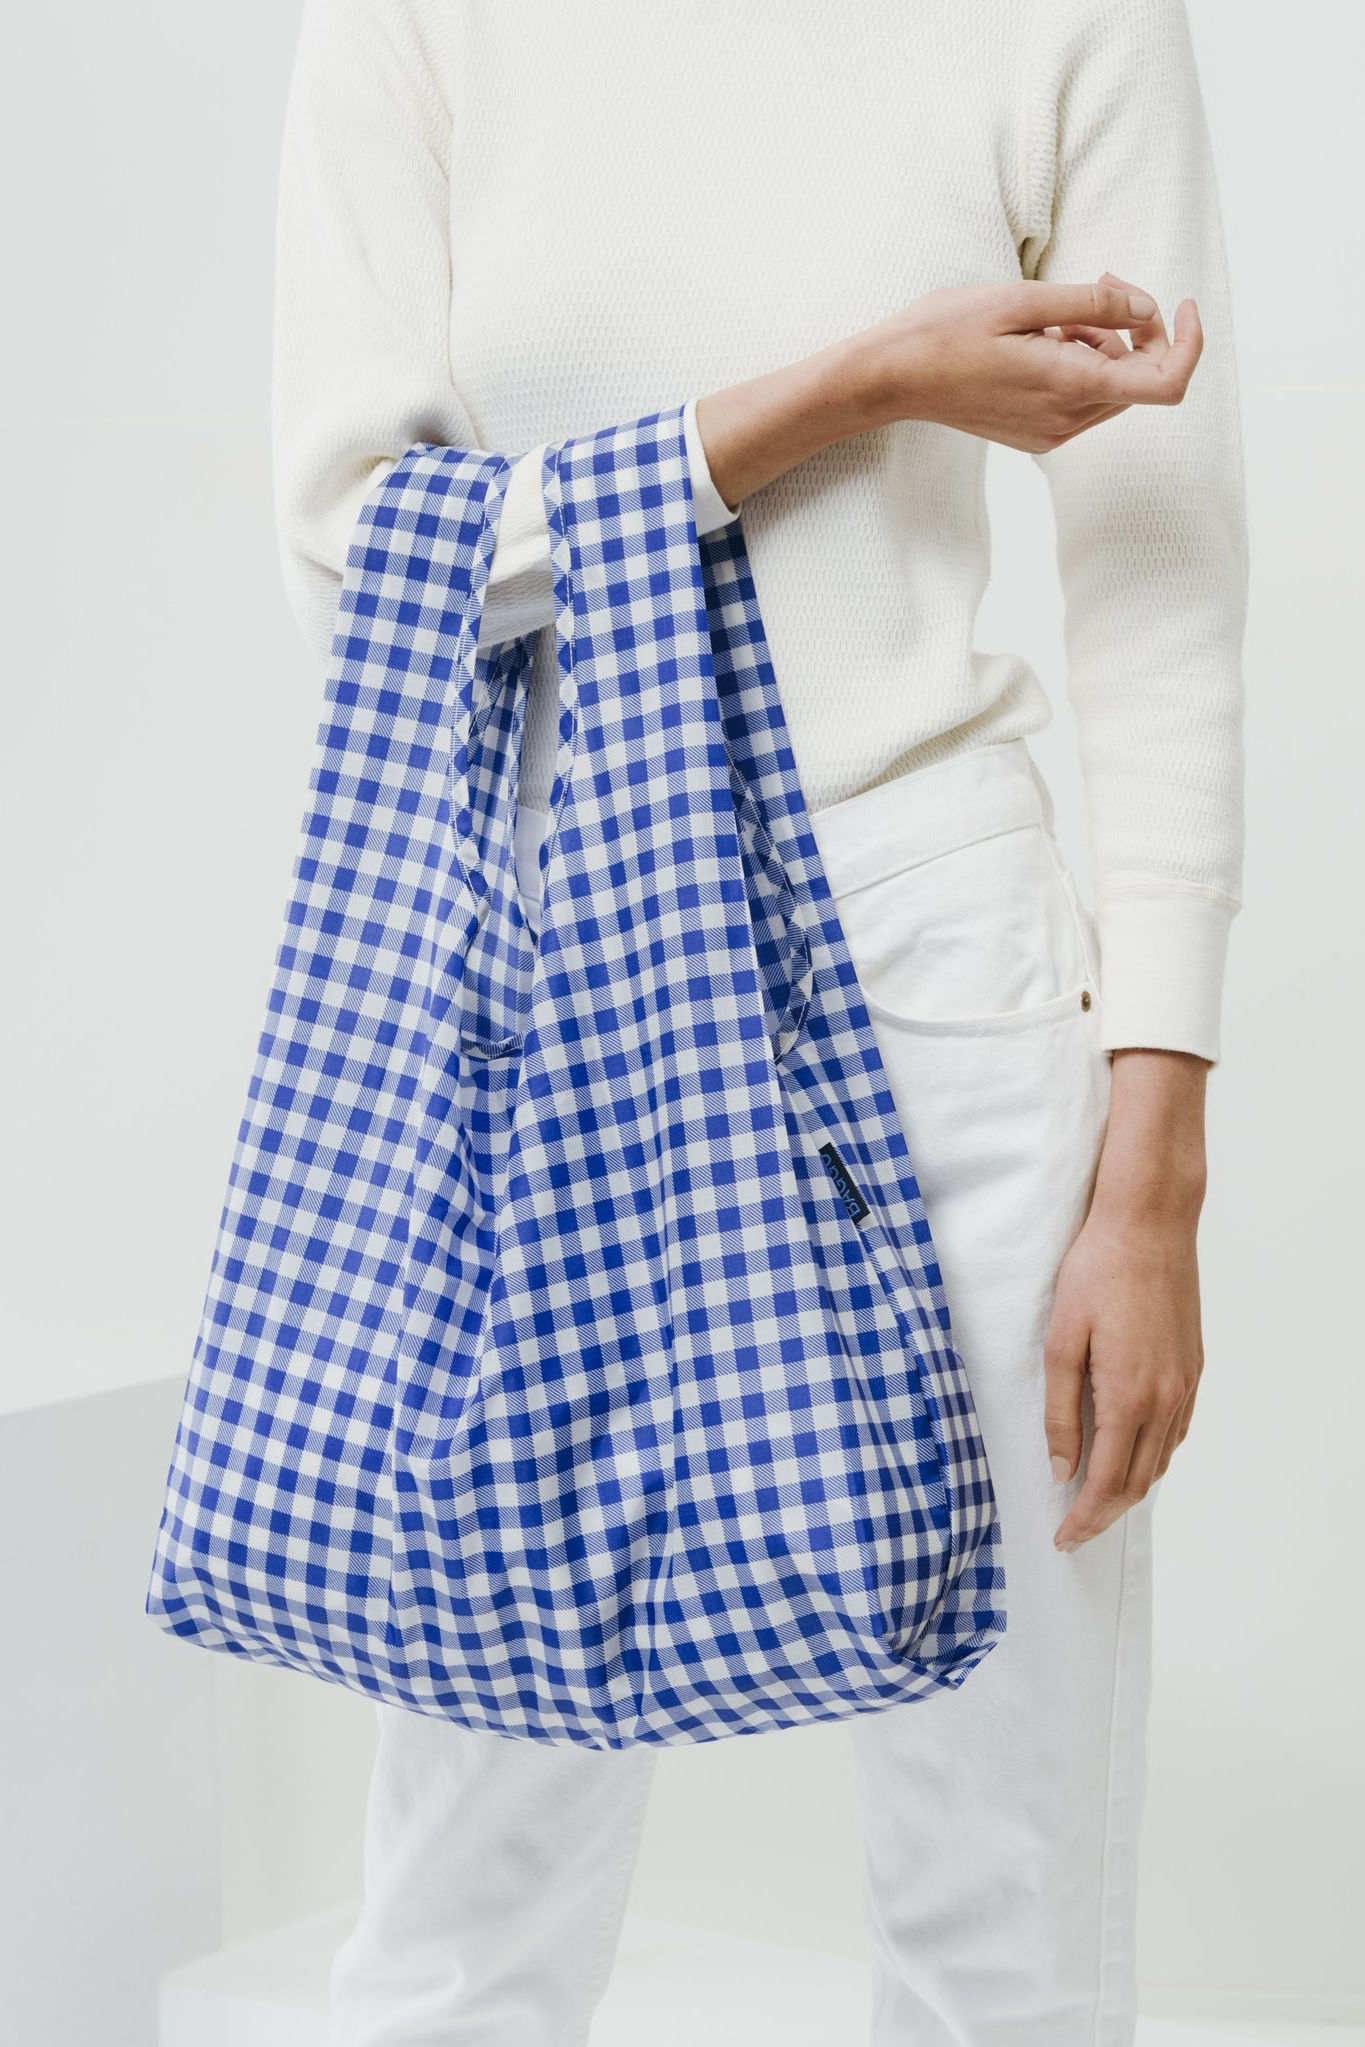 I Cannot Travel Without These Reusable Bags